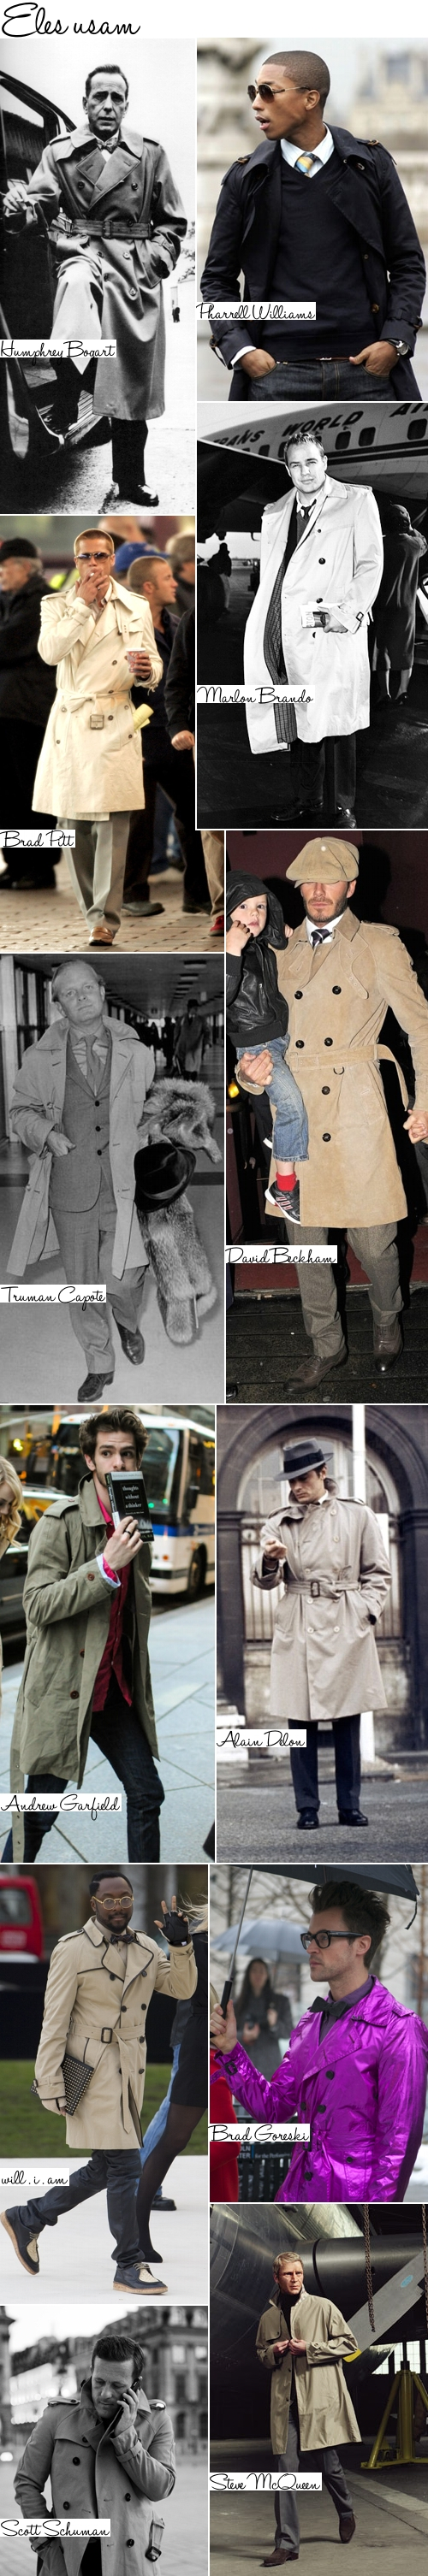 Trench coat eles